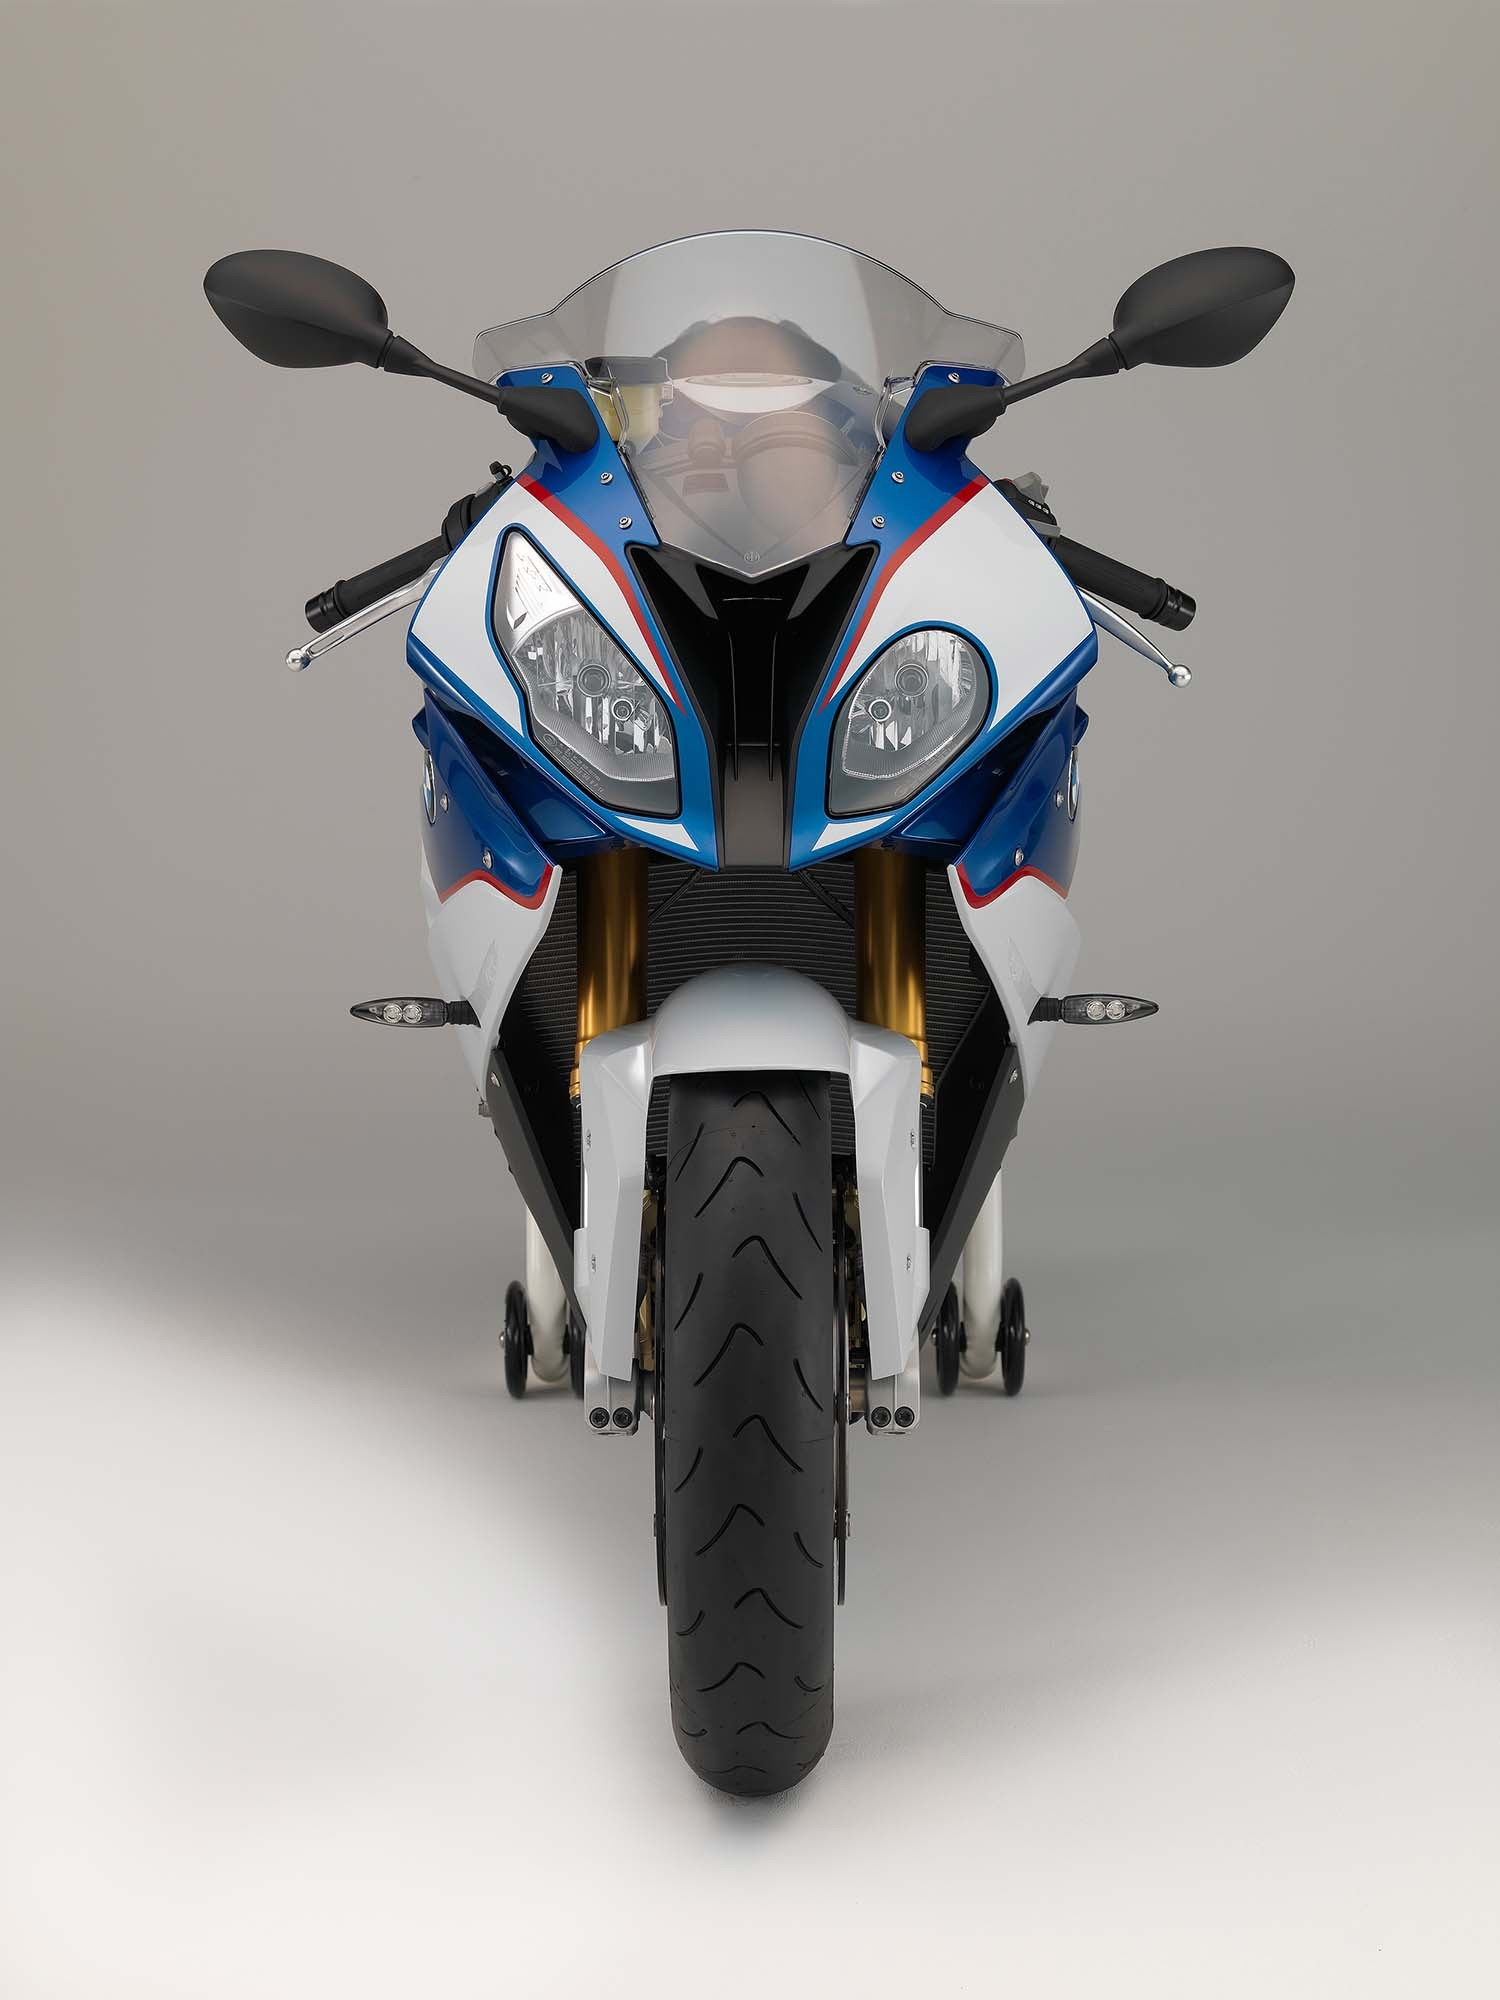 2015 Bmw S1000rr Mega Gallery - Bmw S1000rr 2017 Front , HD Wallpaper & Backgrounds